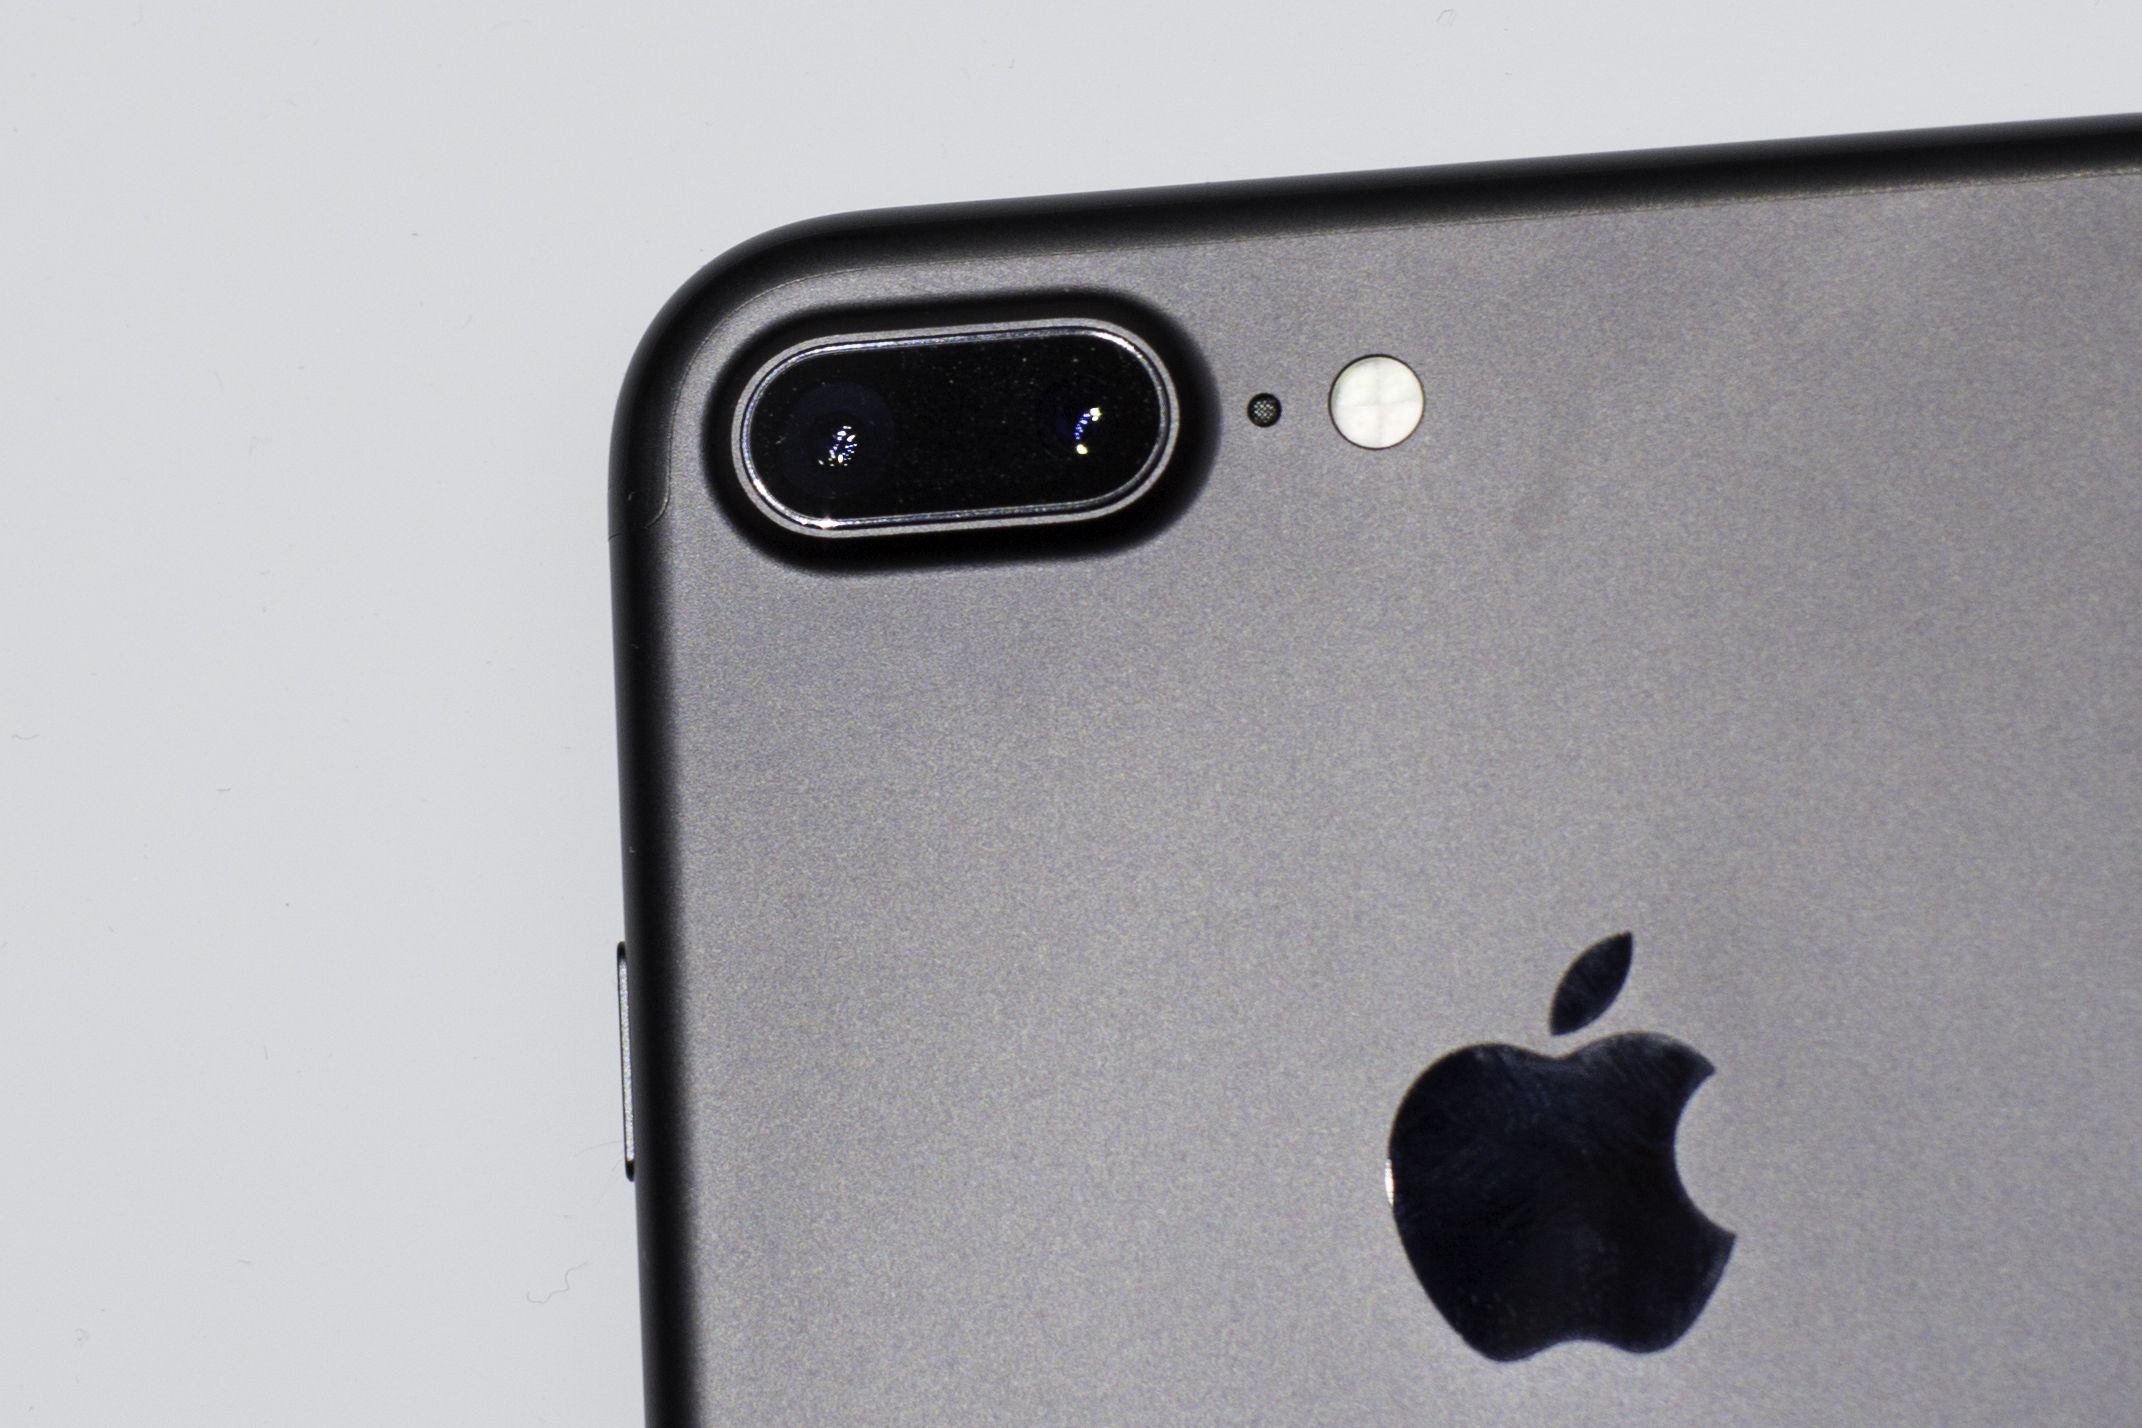 """The iPhone 7 Plus has dual 12-megapixel cameras on back. With iOS 10, some apps let you shoot with a """"raw"""" photo format that offers more quality but takes up more storage space."""